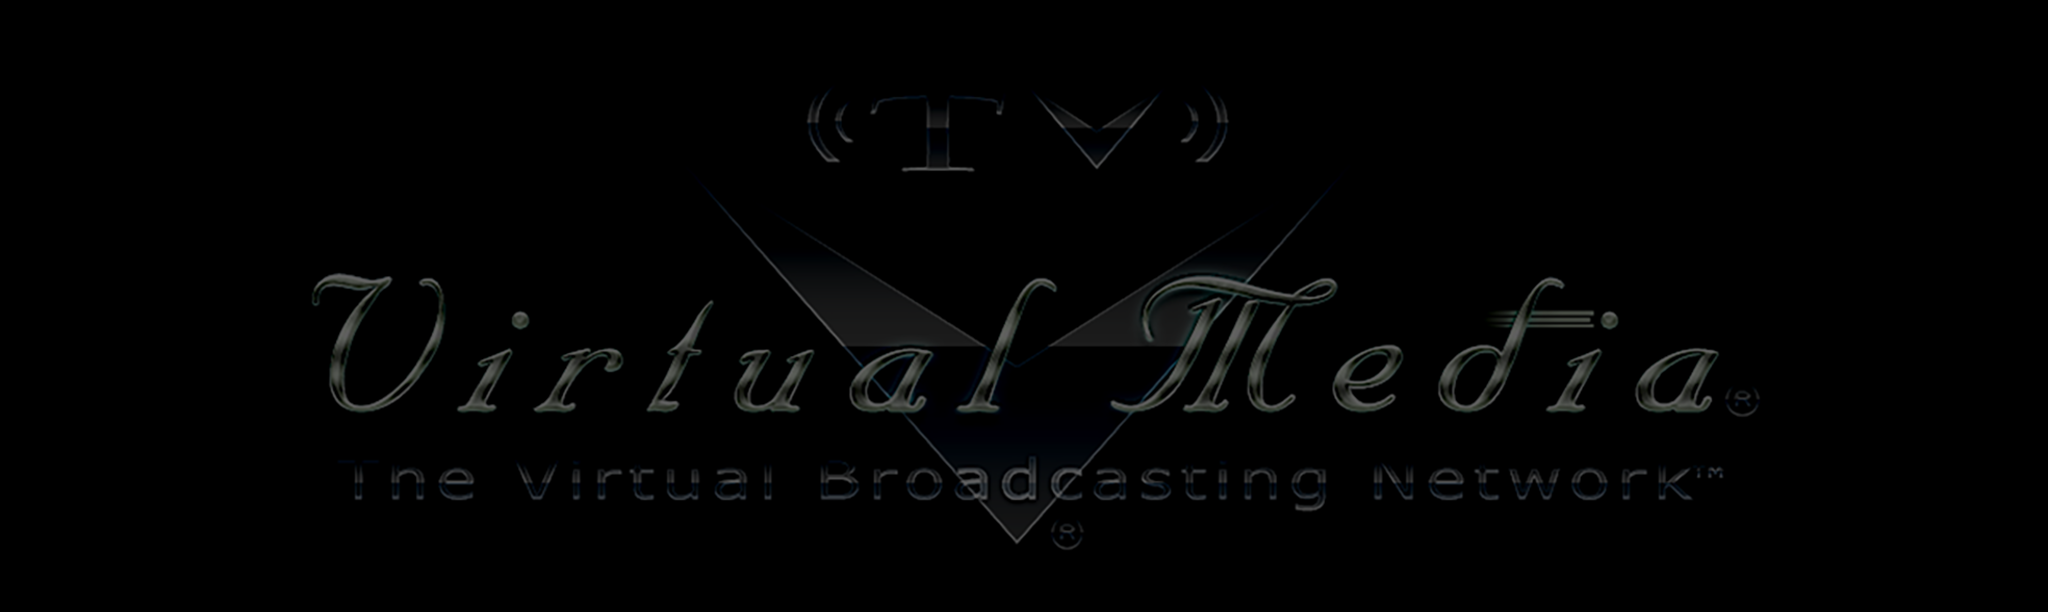 Virtual-Media-VTV-Logo-2017-banner.png